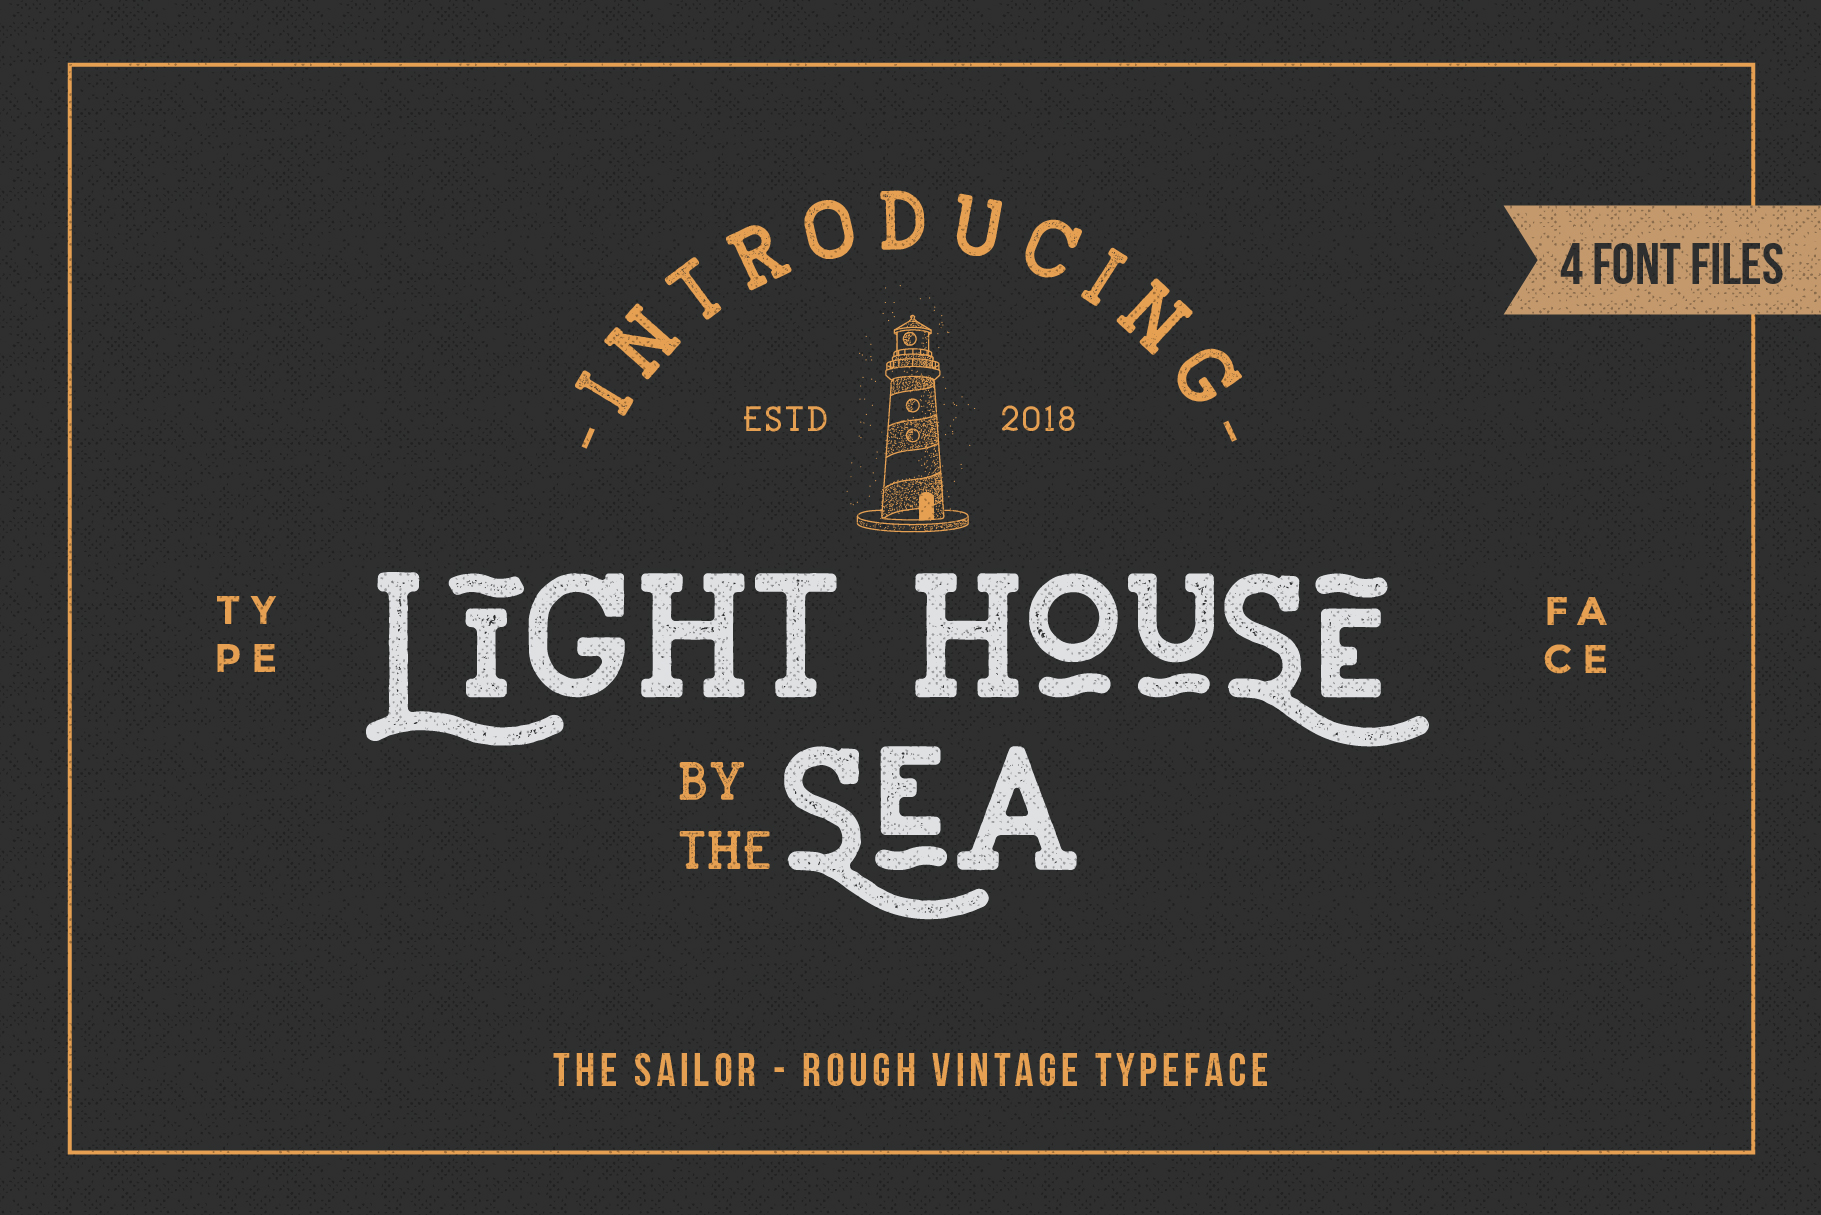 LightHouse - Vintage Sailor Rough Typeface example image 1